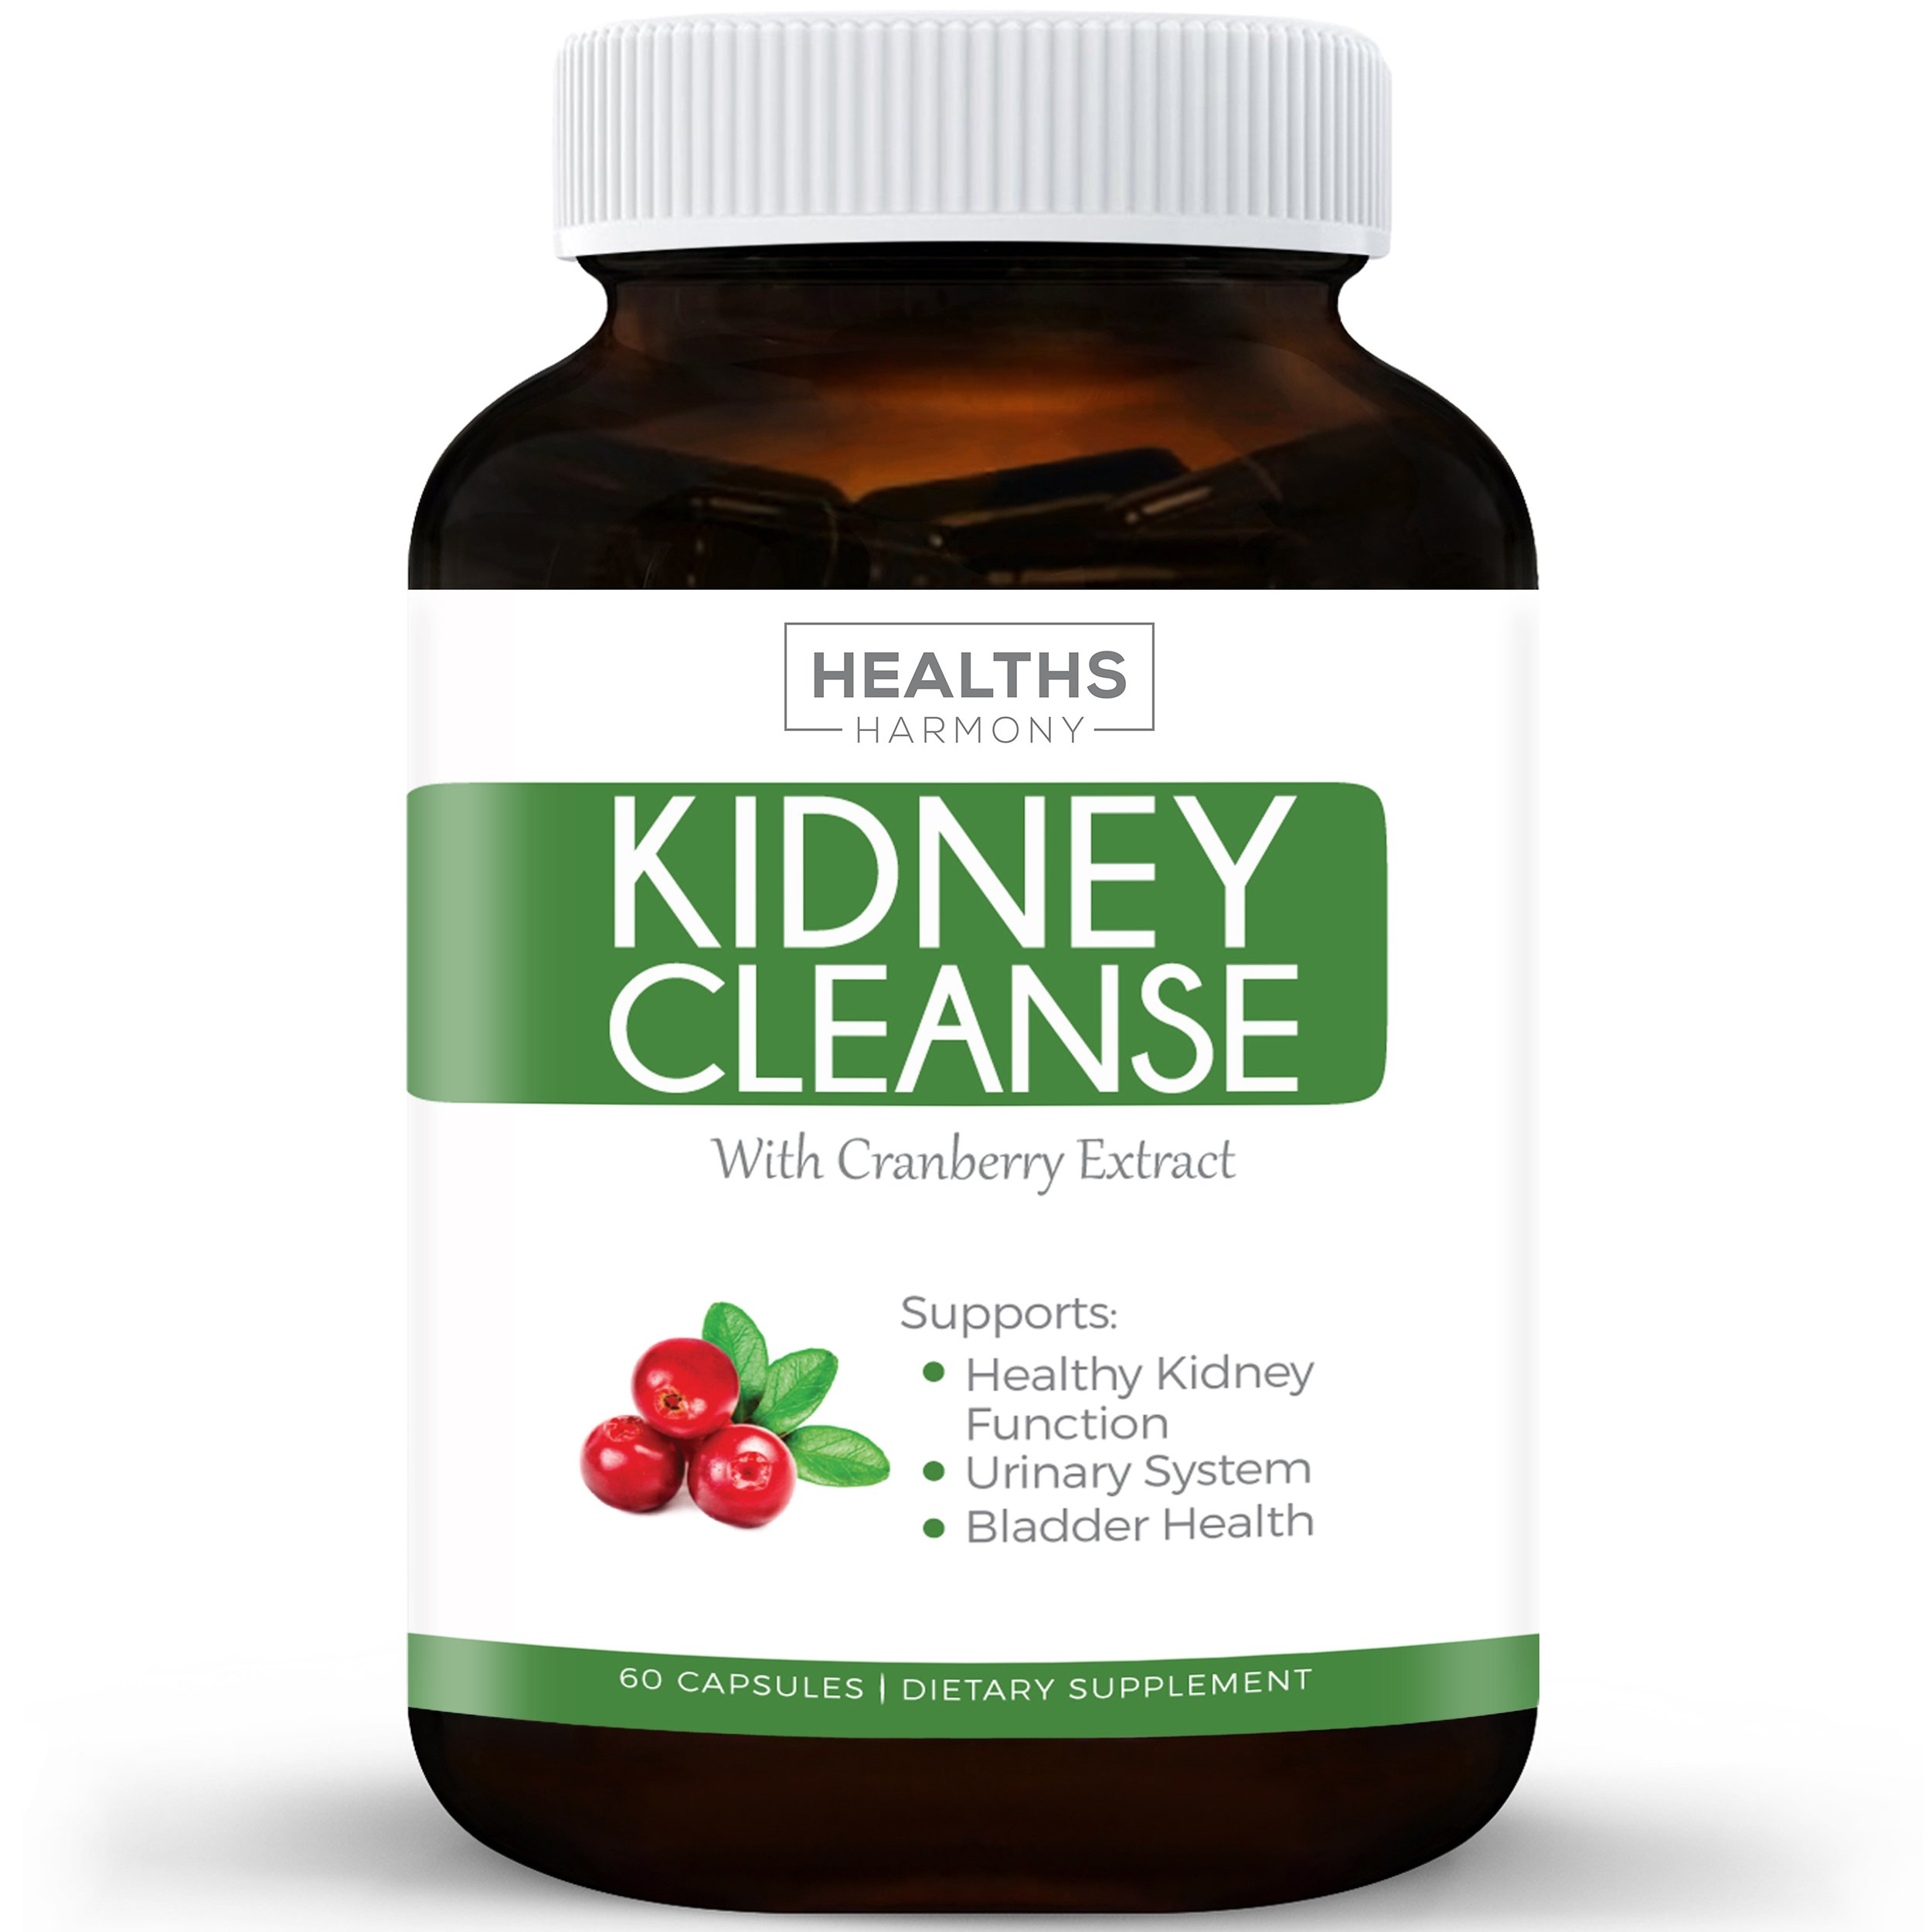 Best Kidney Cleanse (Vegetarian) Supports Bladder Control & Urinary Tract - Powerful Cranberry Extract - Natural Herbs Supplement - Kidney Health, Flush & Detox - 60 Capsules No Pills